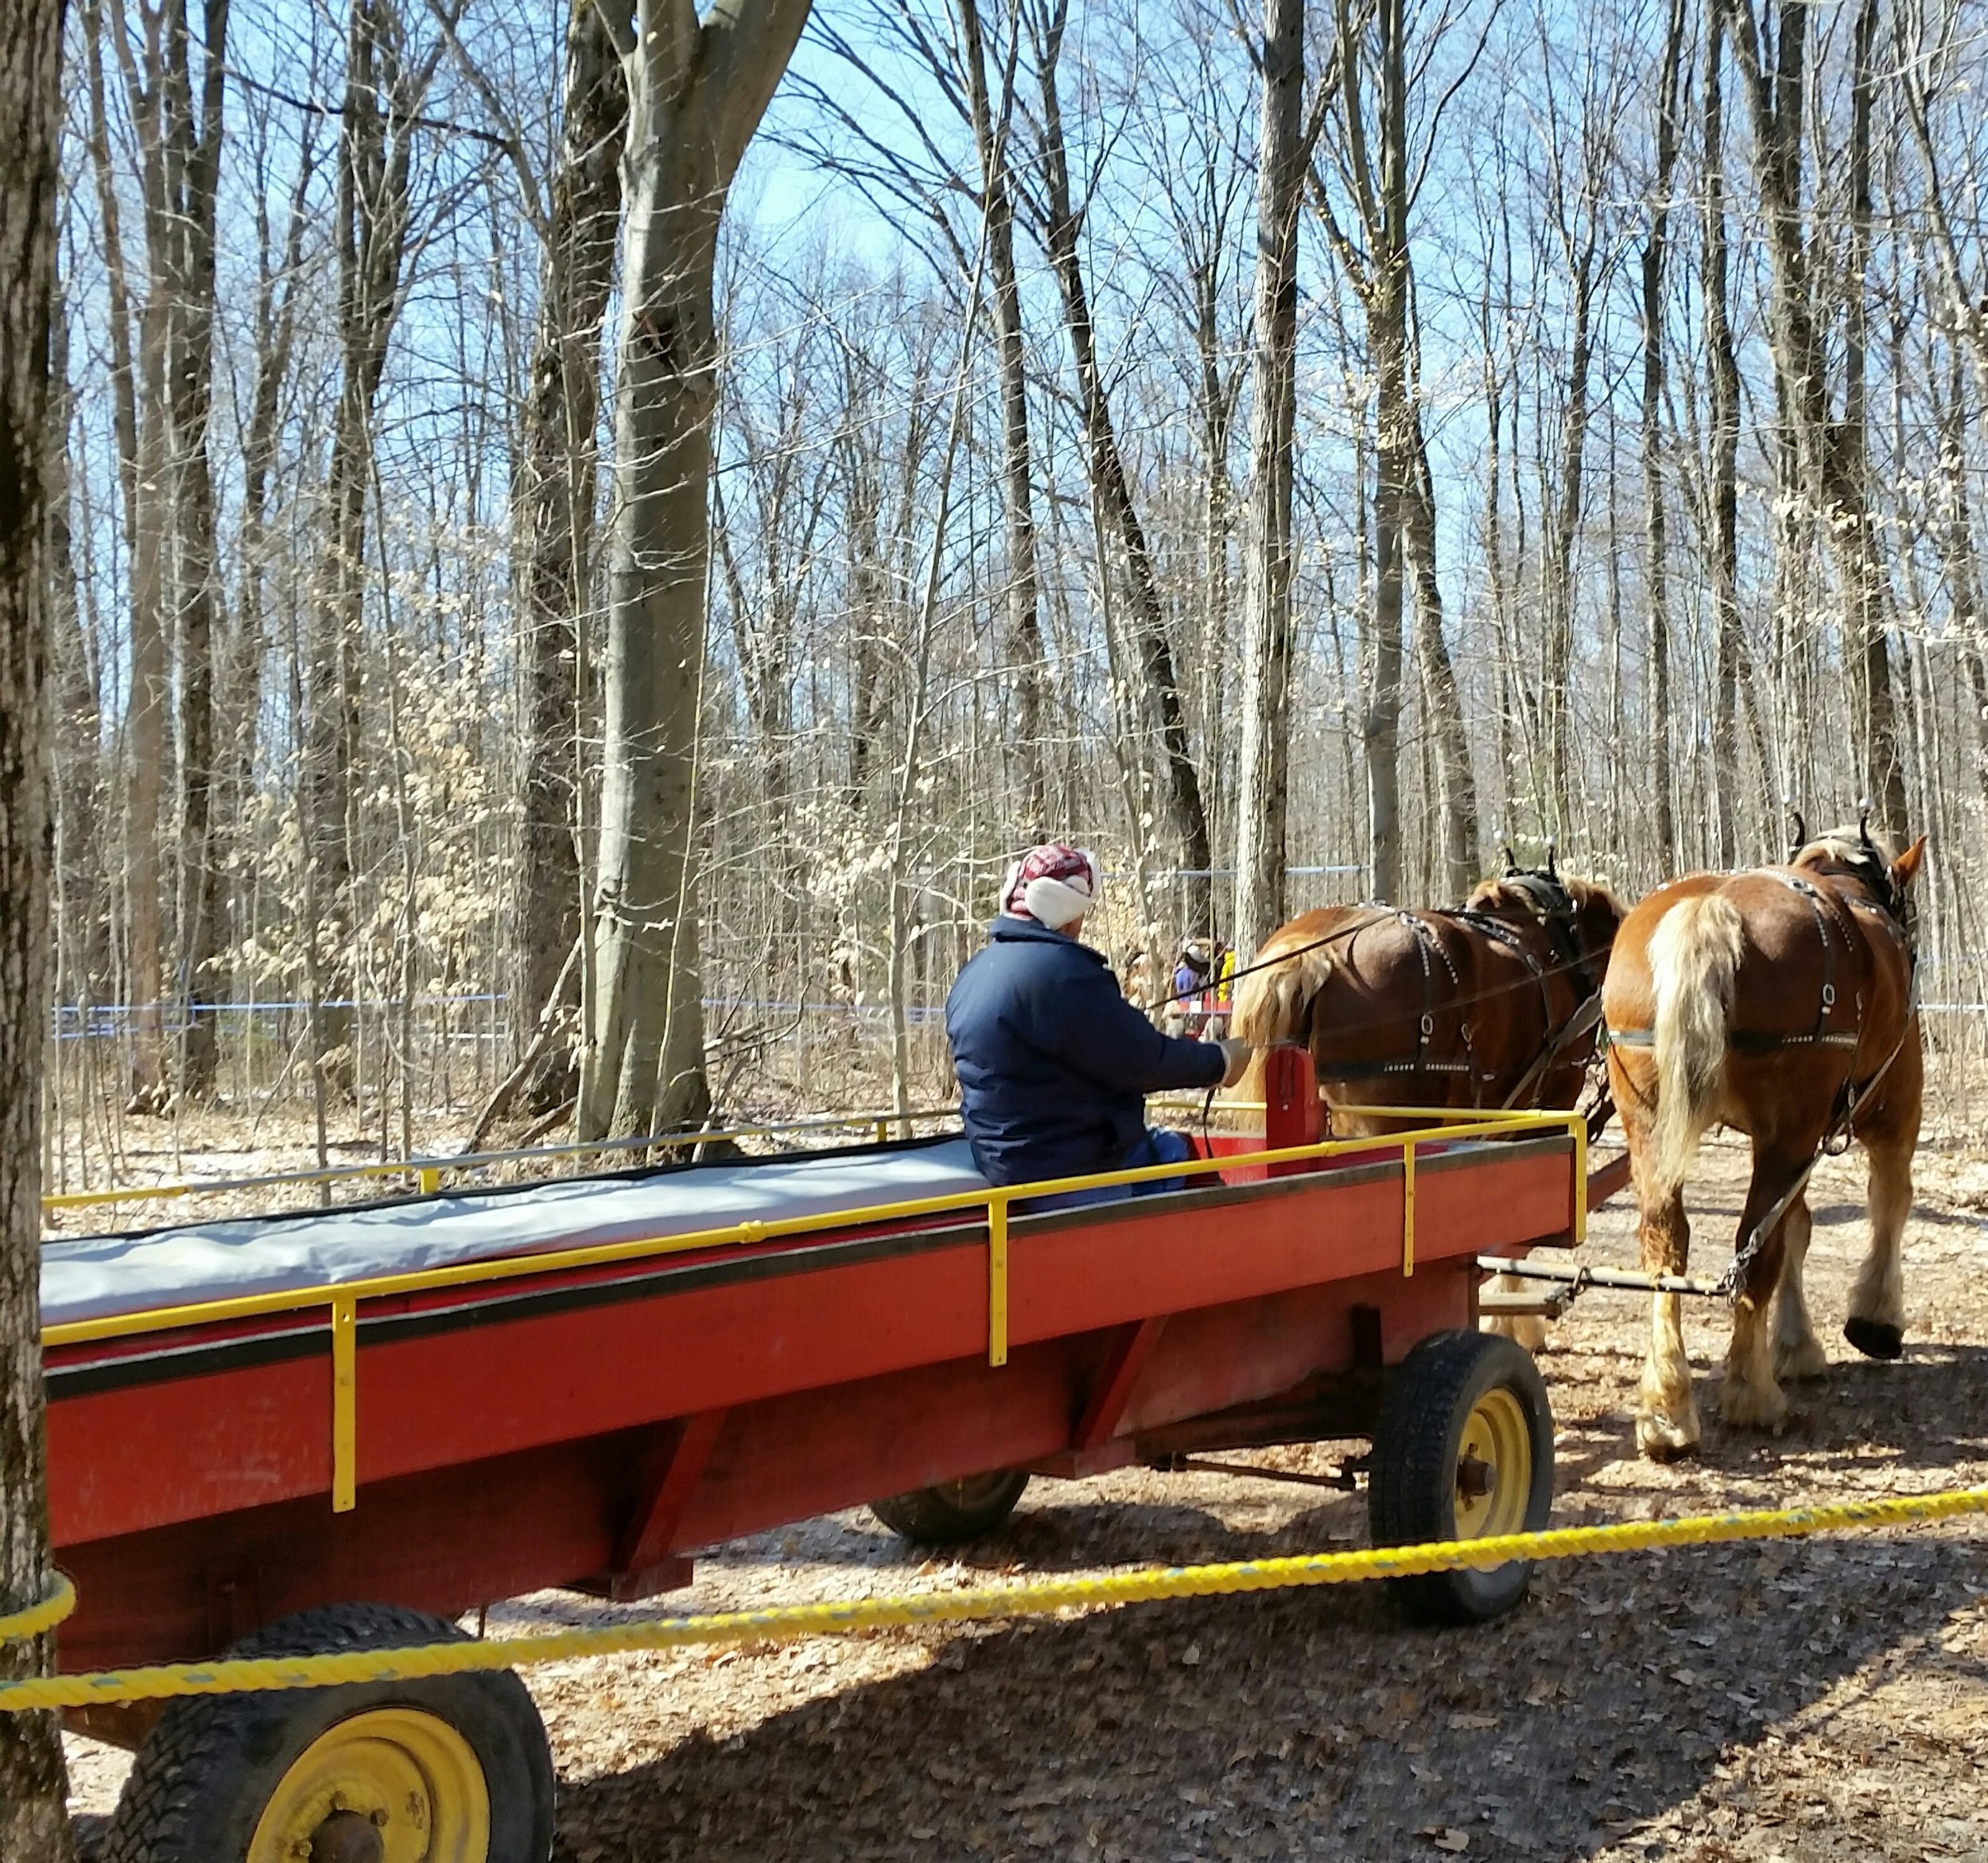 A wagon ride through the sugar bush.